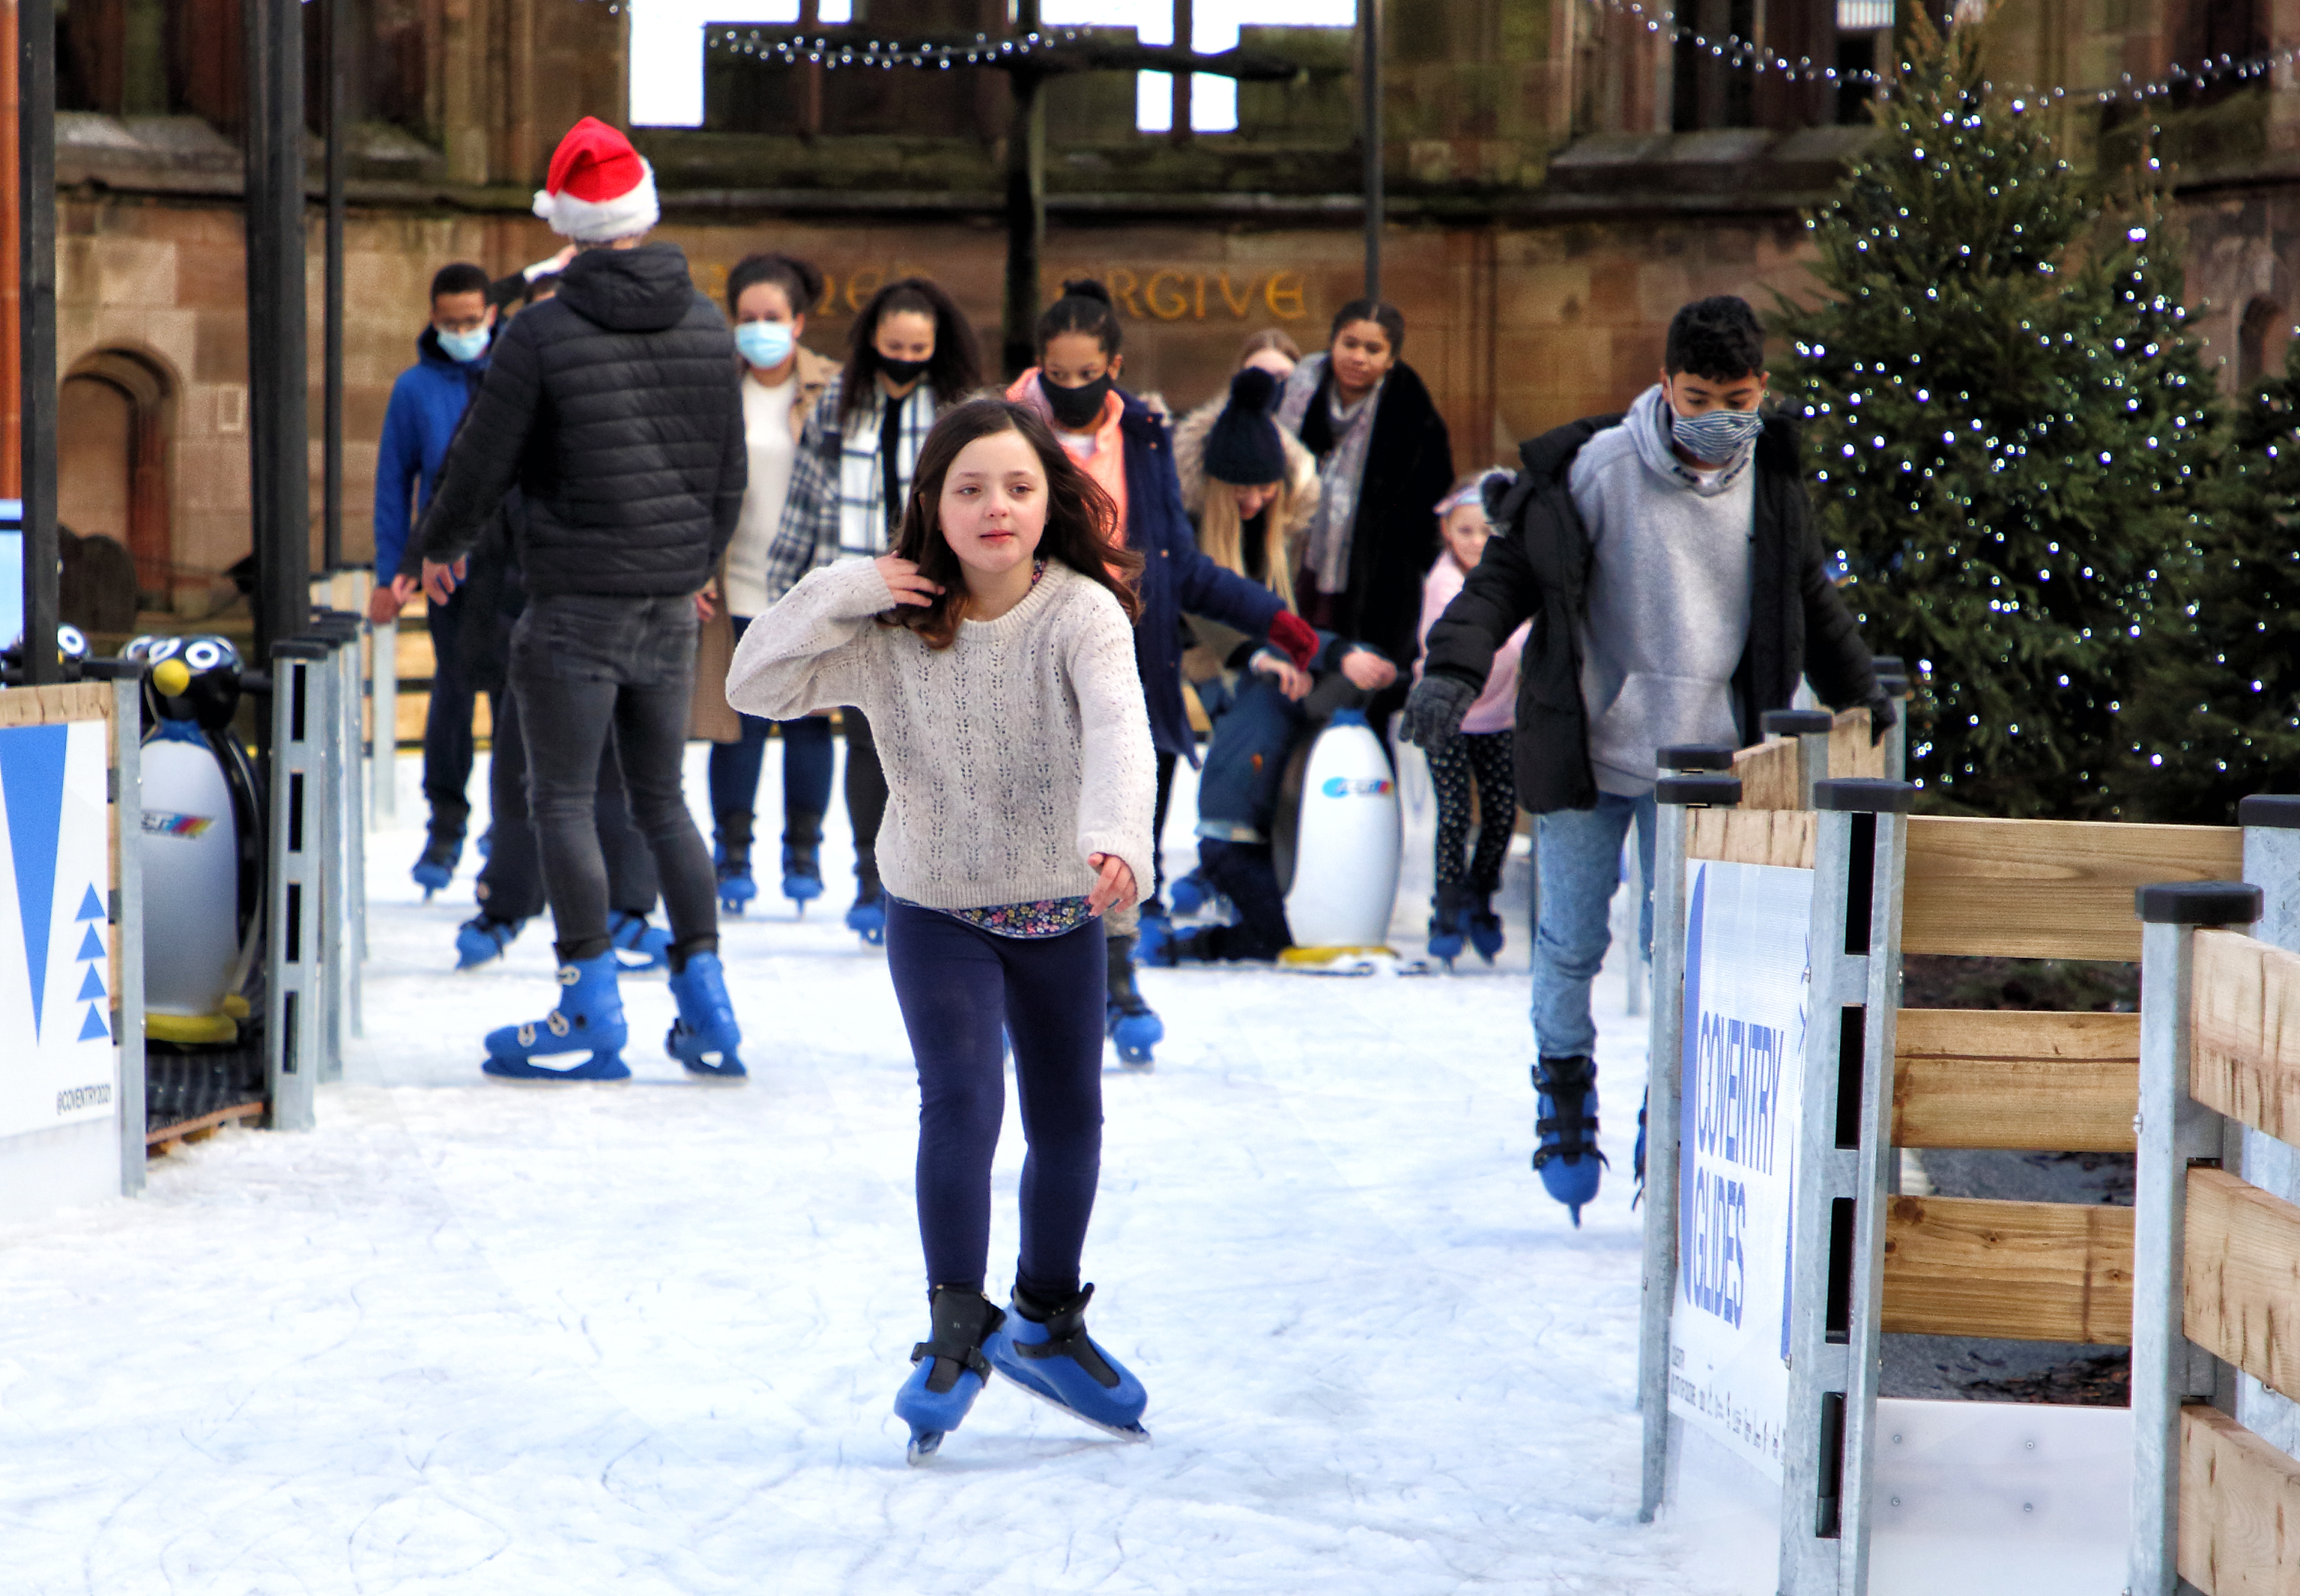 Skaters on the new Coventry Glides Ice skating rink. Coventry Glides will go ahead under Tier 3 Covid-19 restrictions, in line with national regulations. It means that, up until the possible revision of the Tier system on 16 December, the event will now only admit audiences from Coventry, Warwickshire, and Solihull. People from outside of these areas who have already booked tickets for dates before 16 December will be contacted for a full refund. (Photo by Keith Mayhew / SOPA Images/Sipa USA)